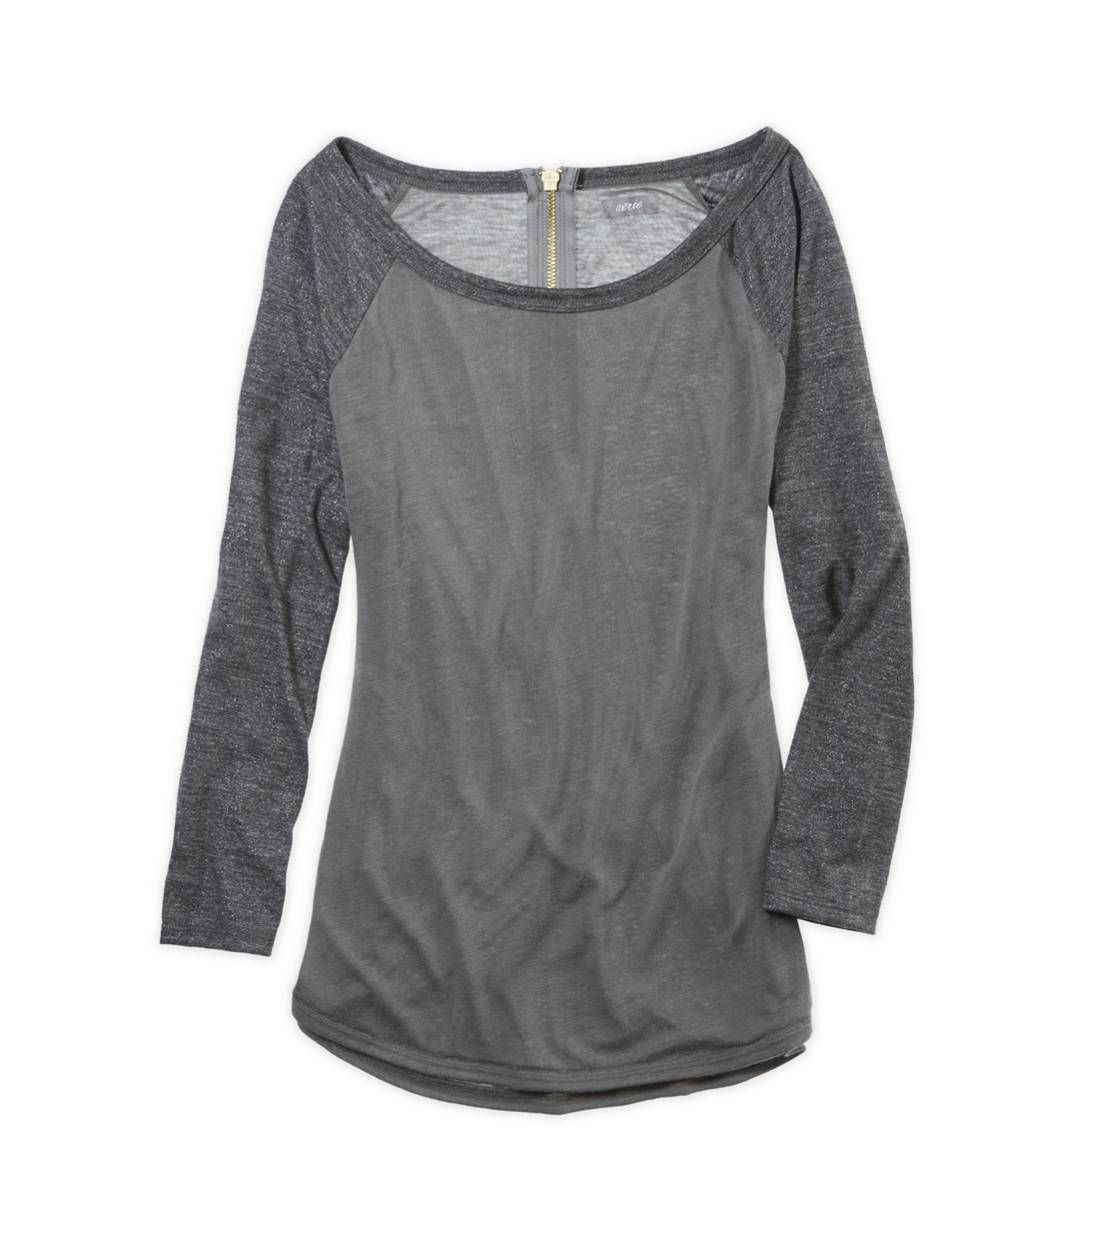 b5df0c7f AEO Factory Tonal Raglan Sweatshirt | My Style | Mens outfitters, American  eagle outfits, Clothes for women